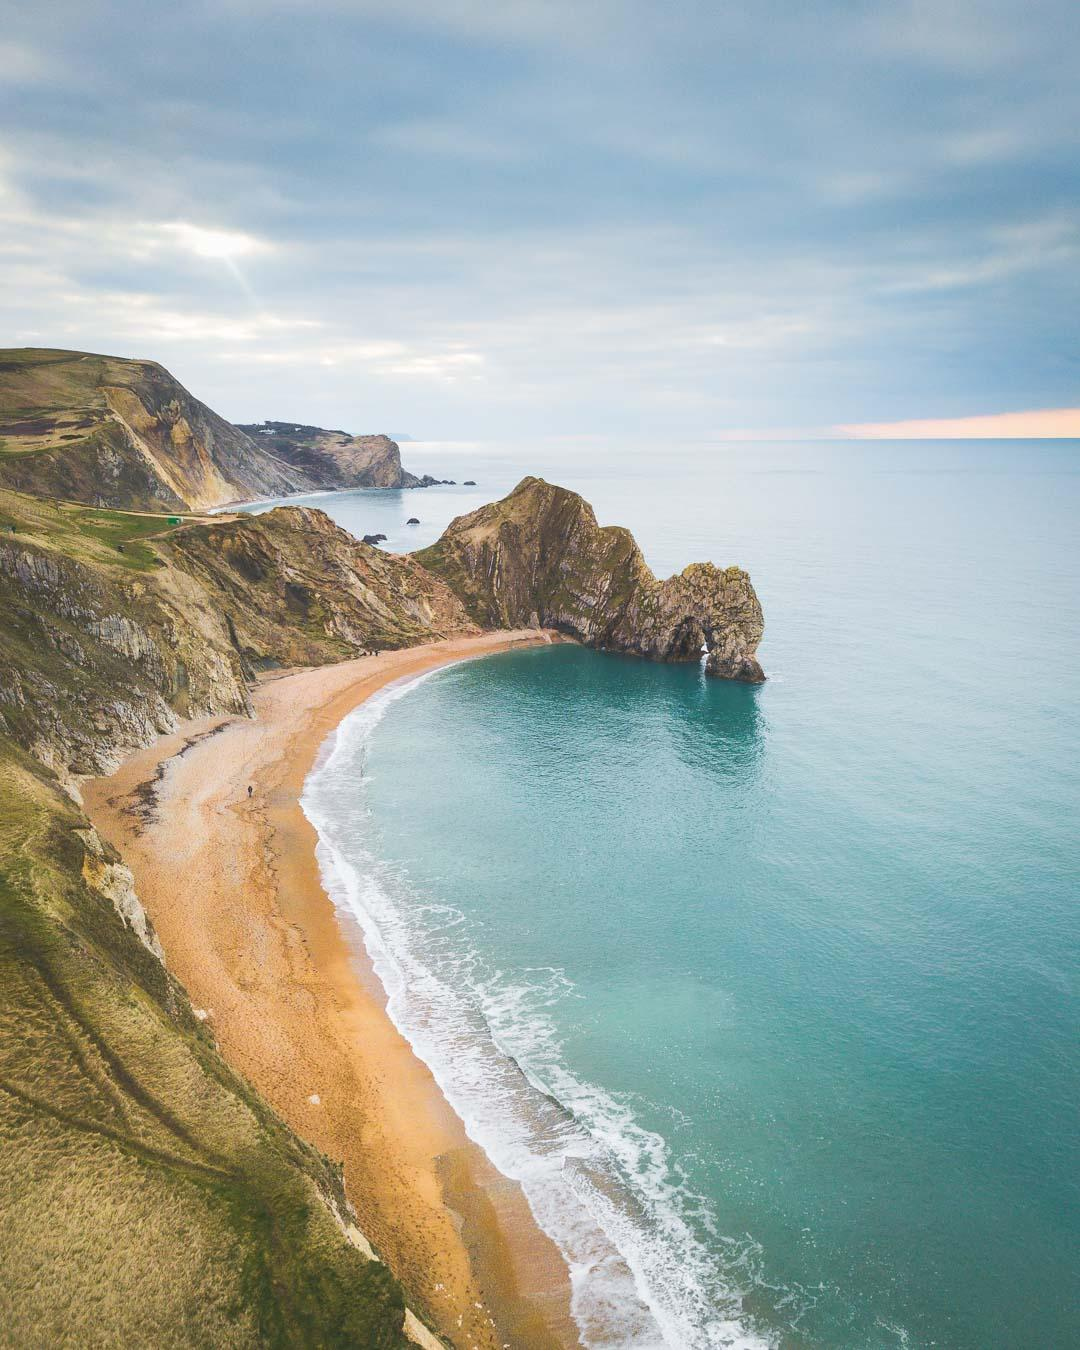 durdle door - photo #12